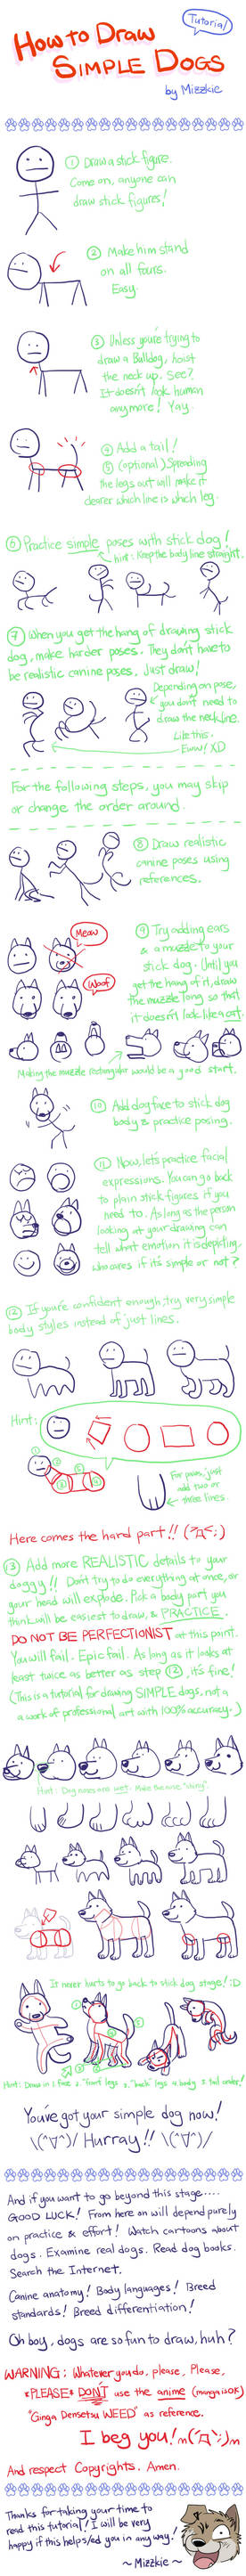 Tut: How to Draw Simple Dogs